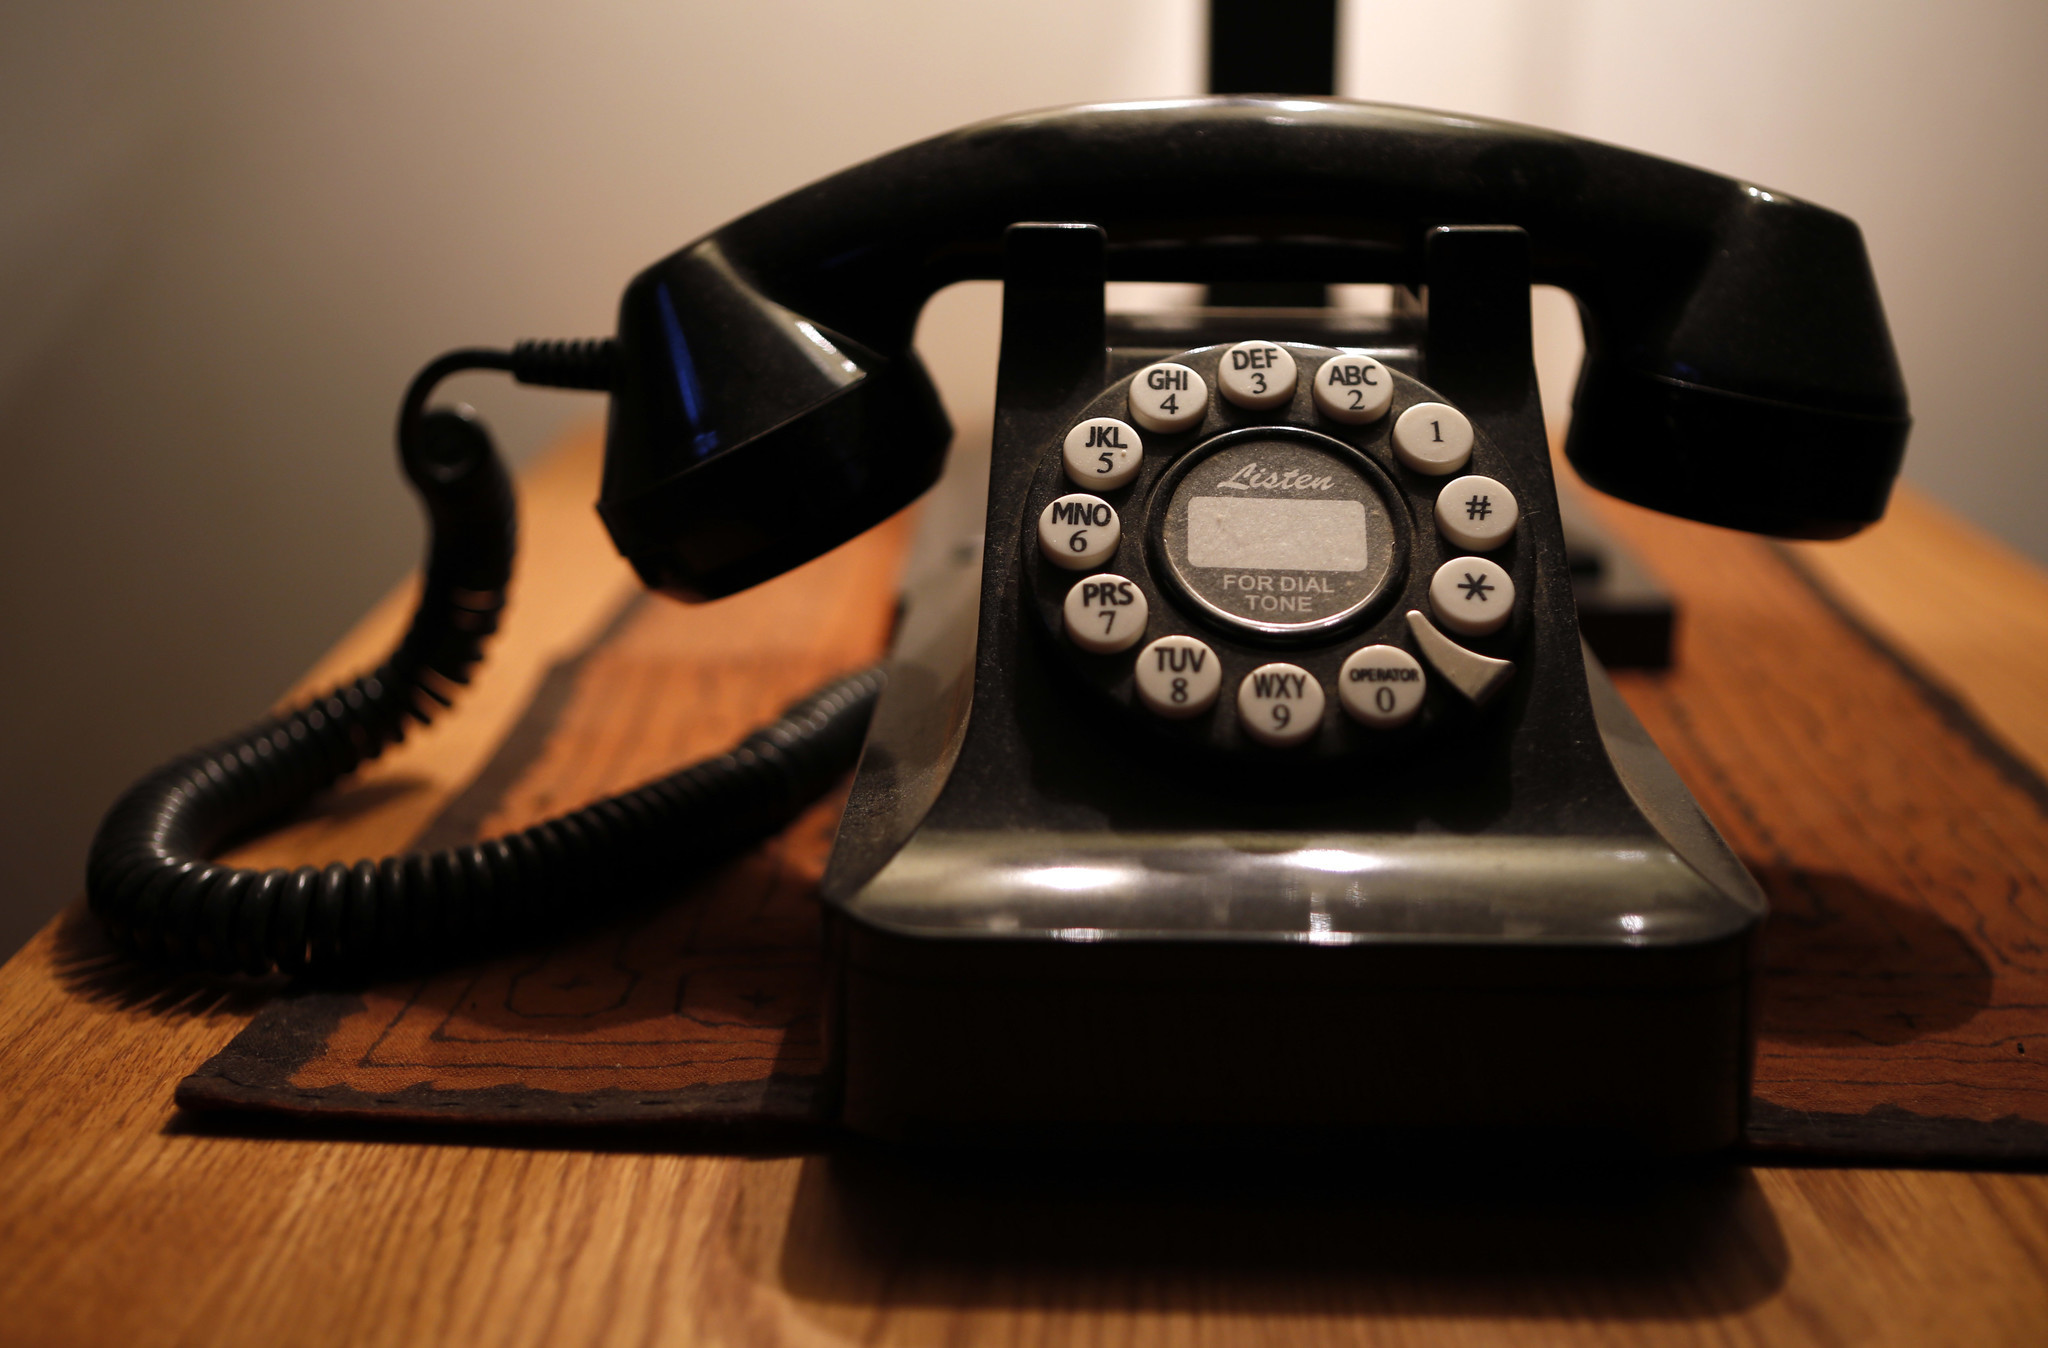 AT&T ready to hang up on traditional landline phone service in Illinois -  Chicago Tribune